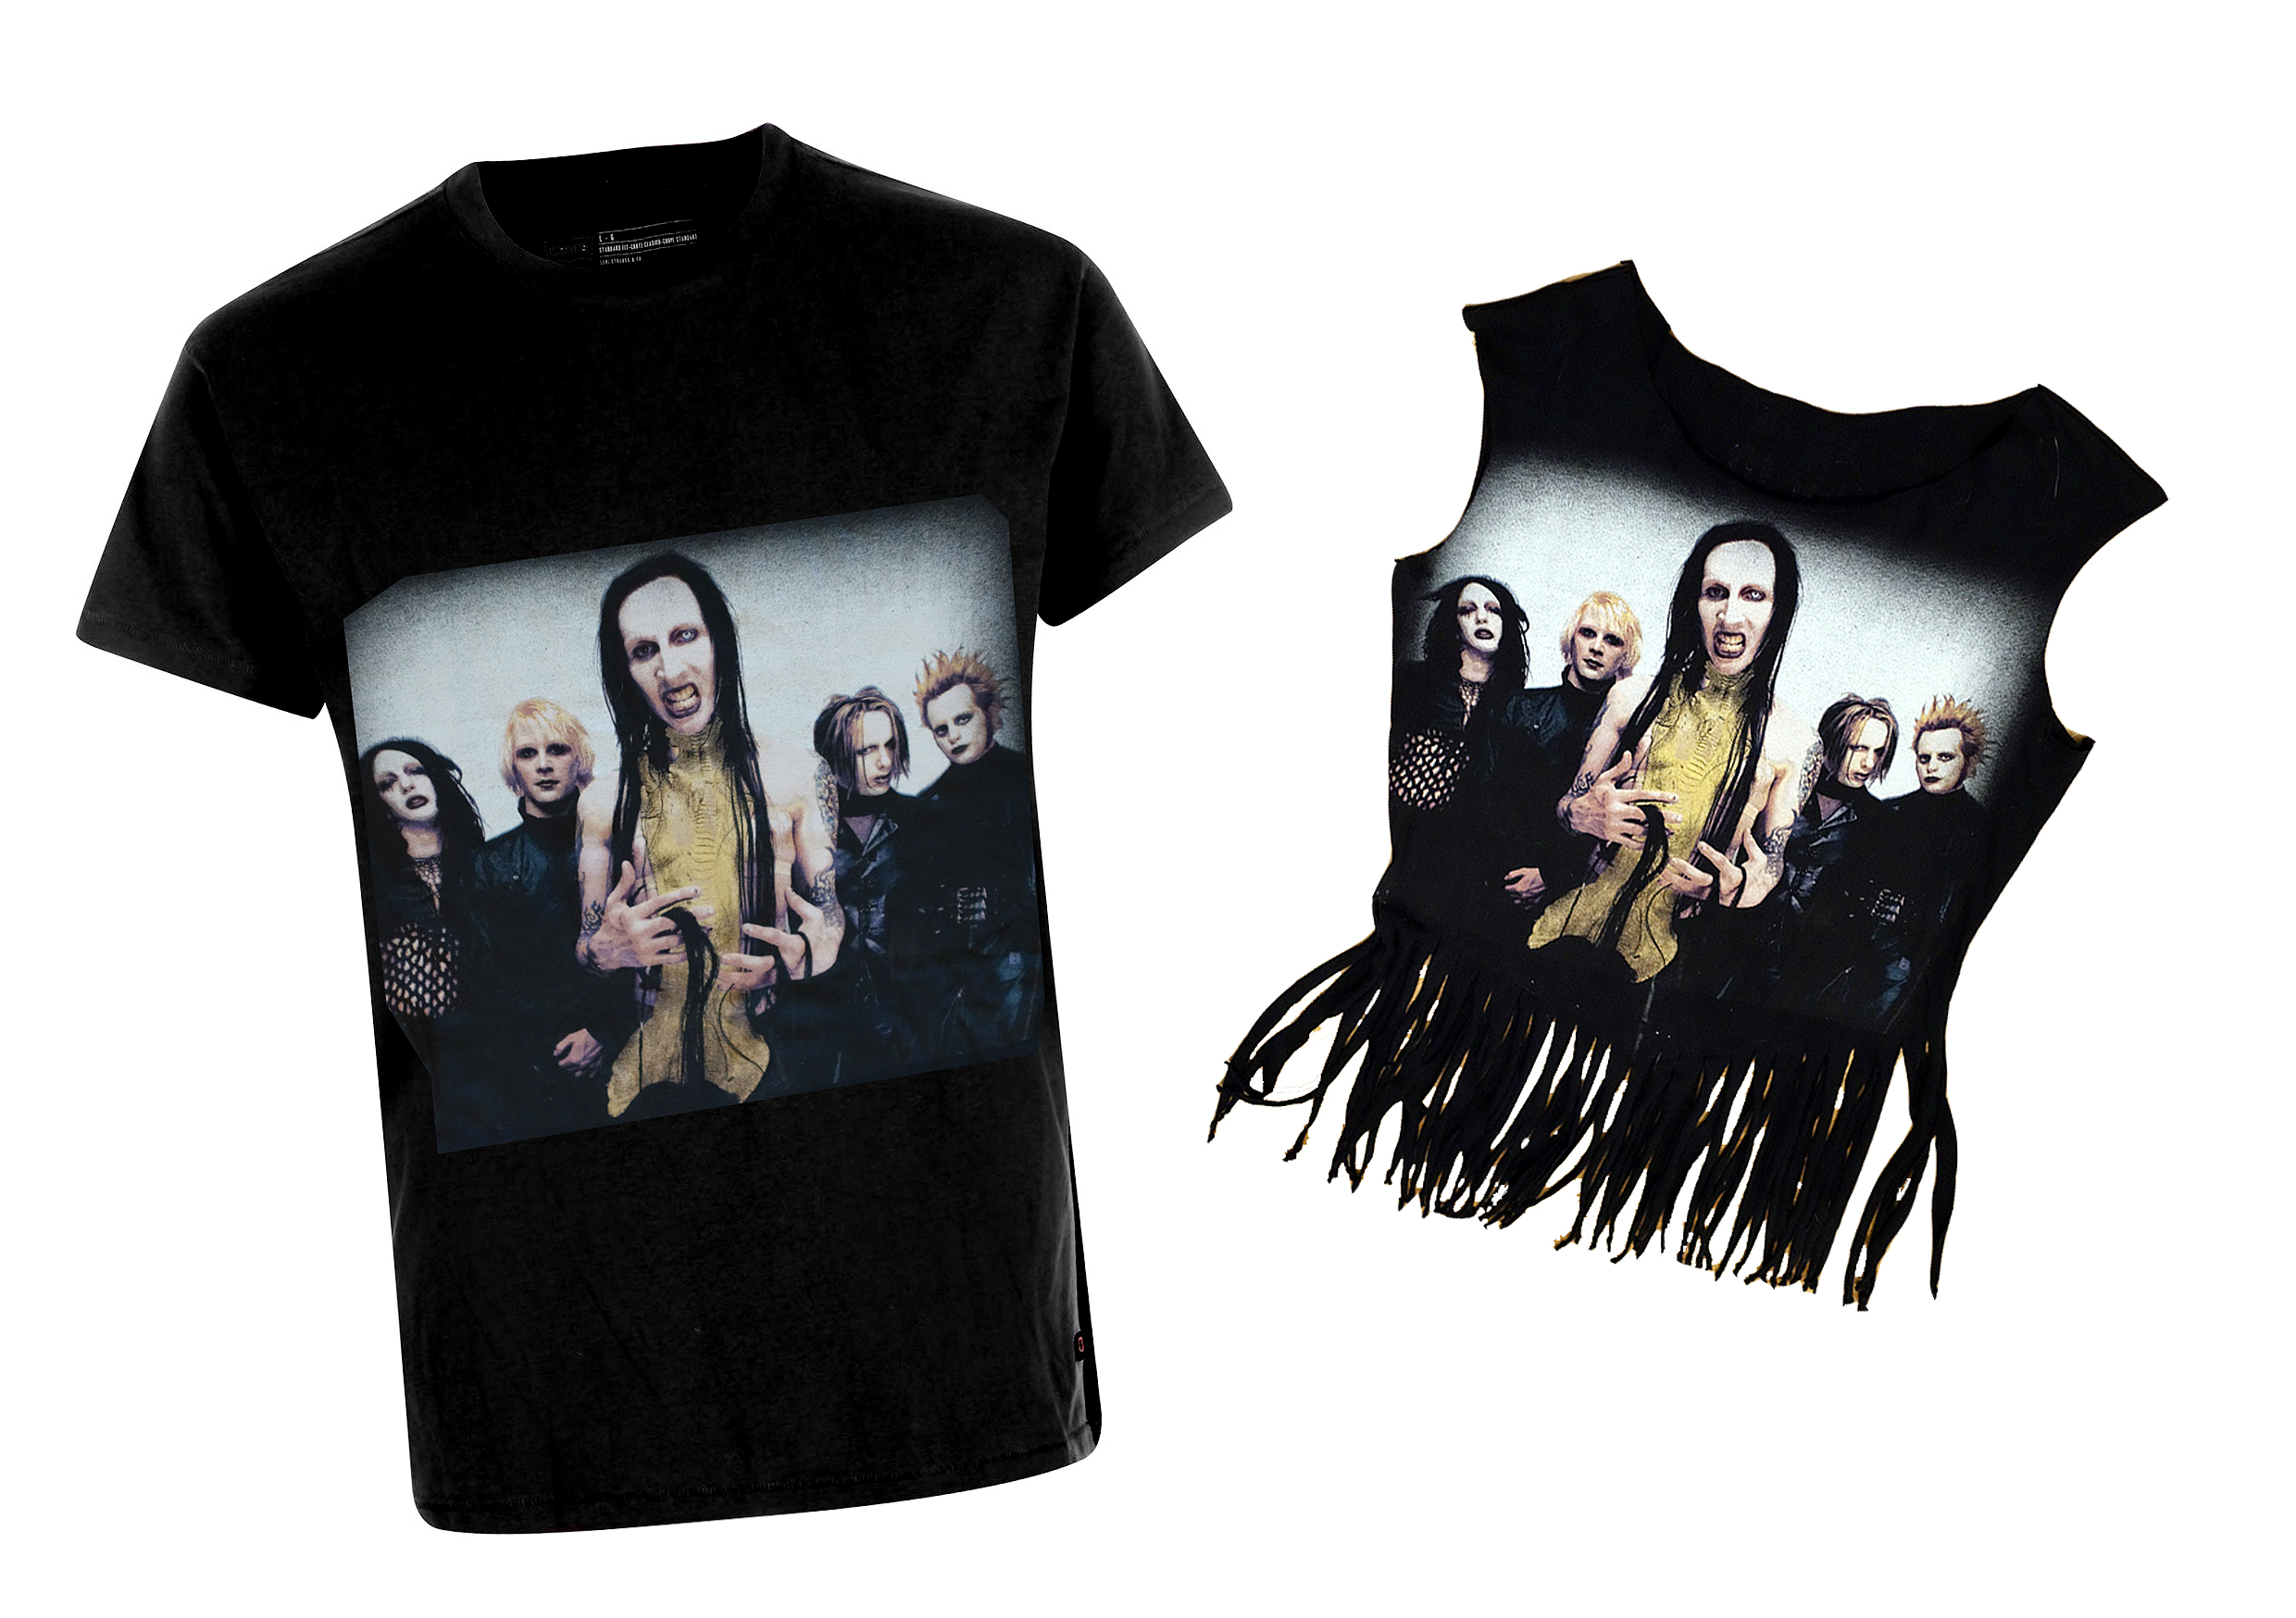 00-DIY-Marilyn-Manson-Shirt-thexed